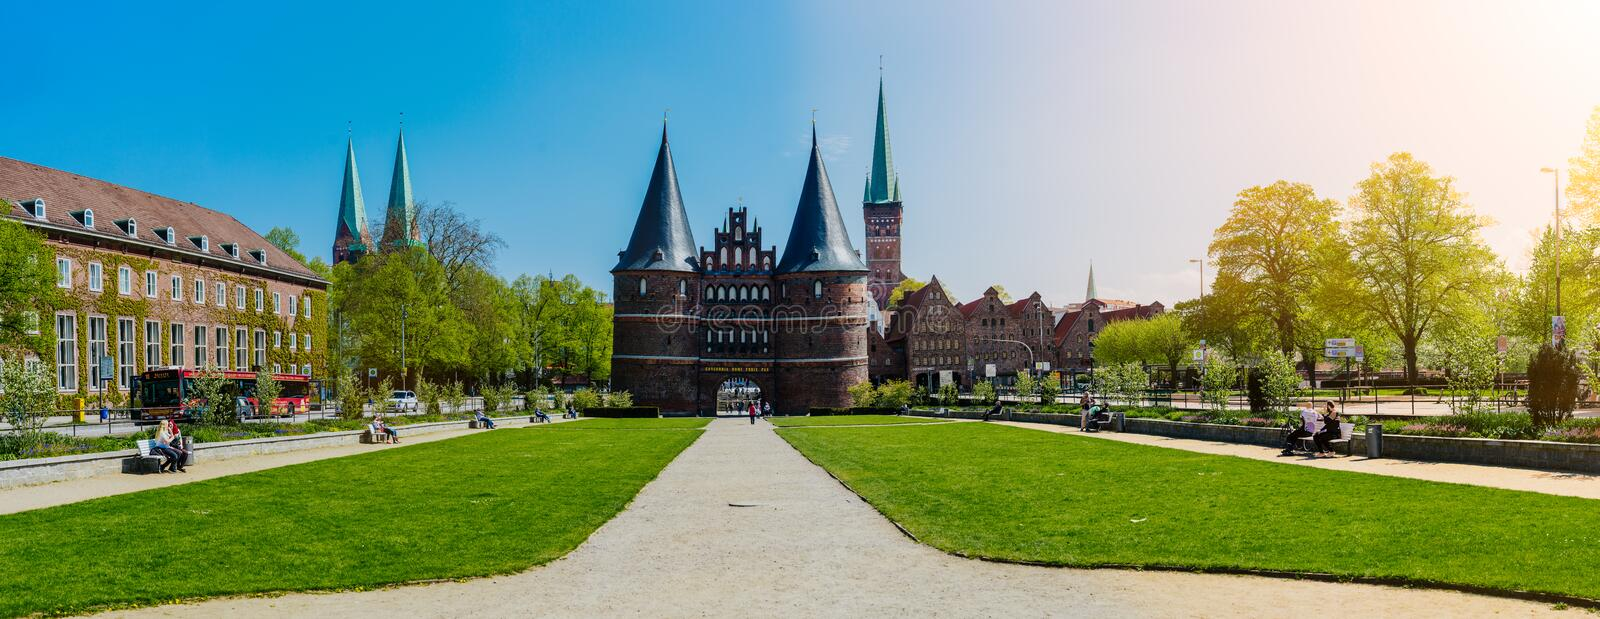 LUEBECK, DUITSLAND - April 29 2018: De Holsten-Poort in Luebeck stock fotografie